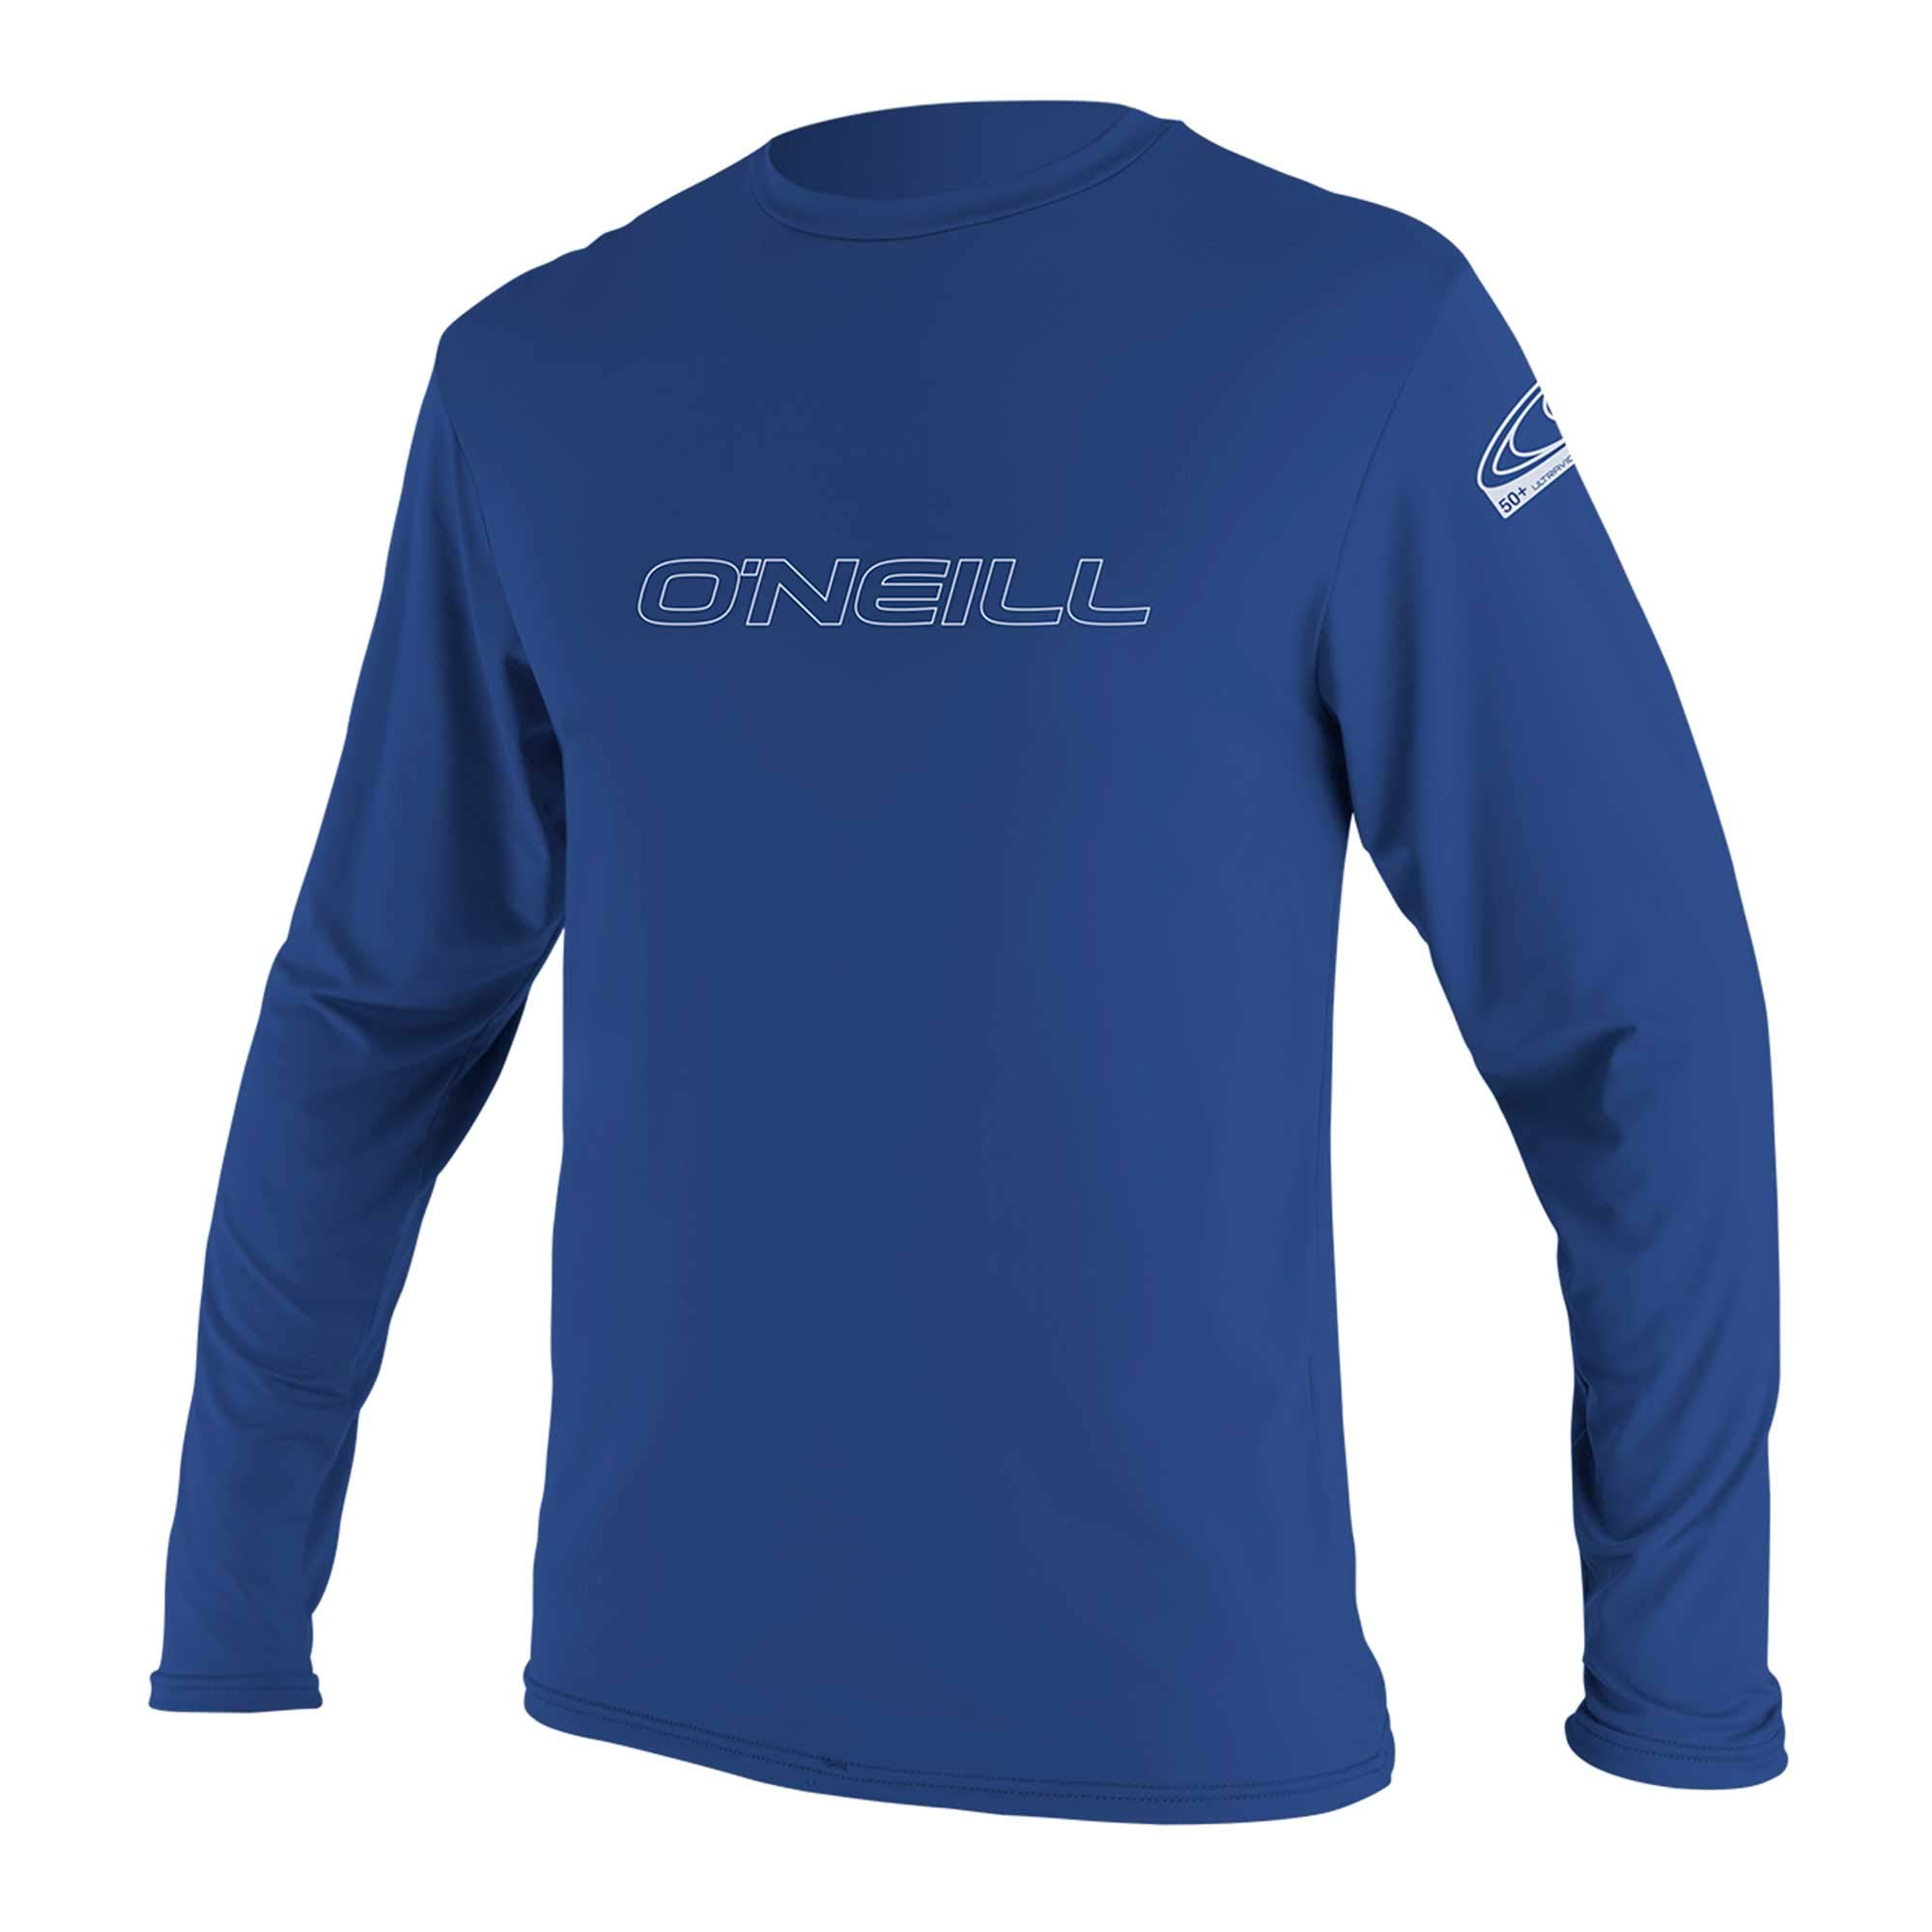 O'Neill Wetsuits Wetsuits UV Sun Protection Mens Basic Skins Long Sleeve Tee Sun Shirt Rash Guard, Pacific, Small